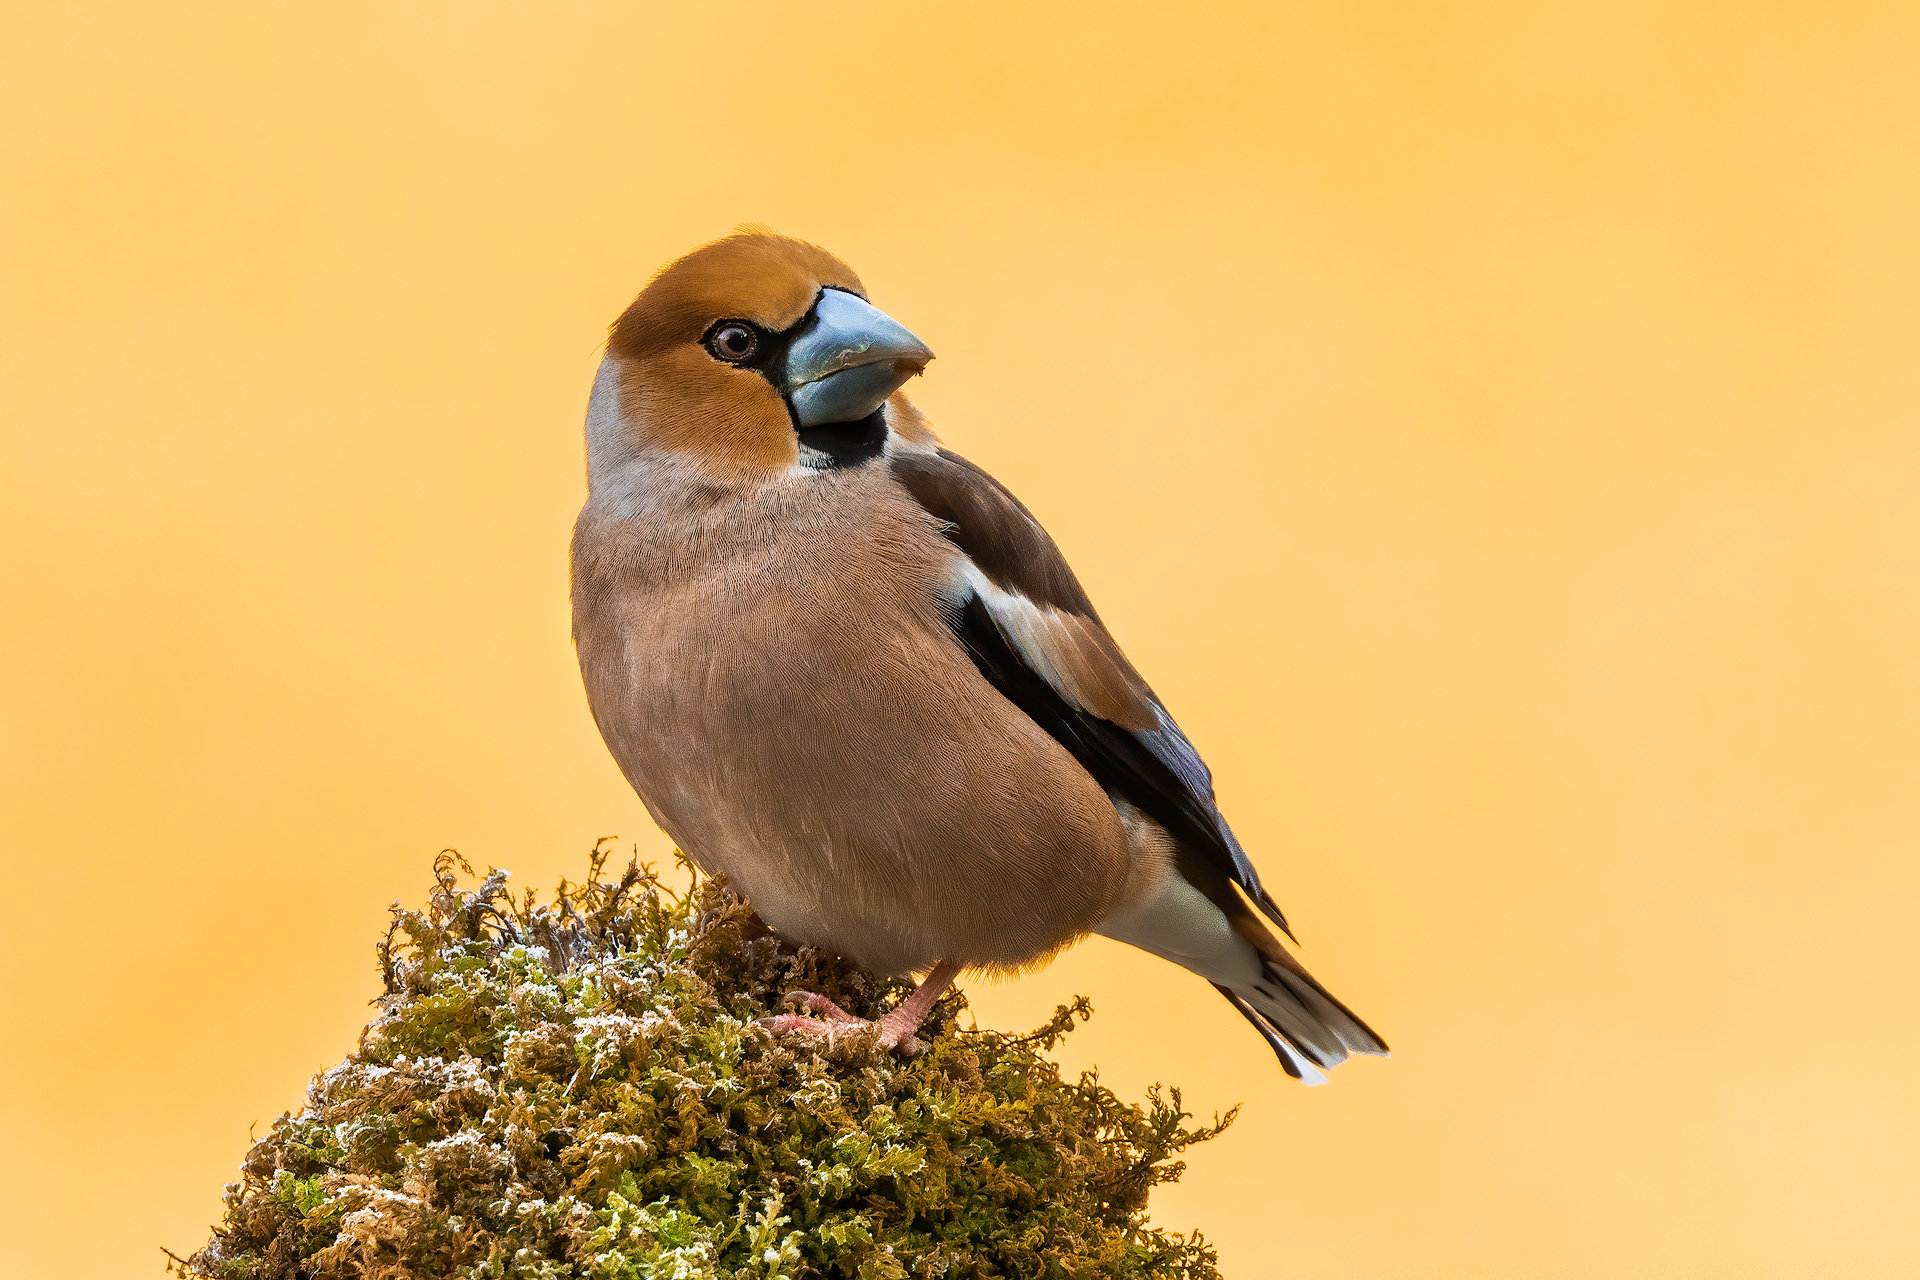 Dlesk (Coccothraustes coccothraustes)